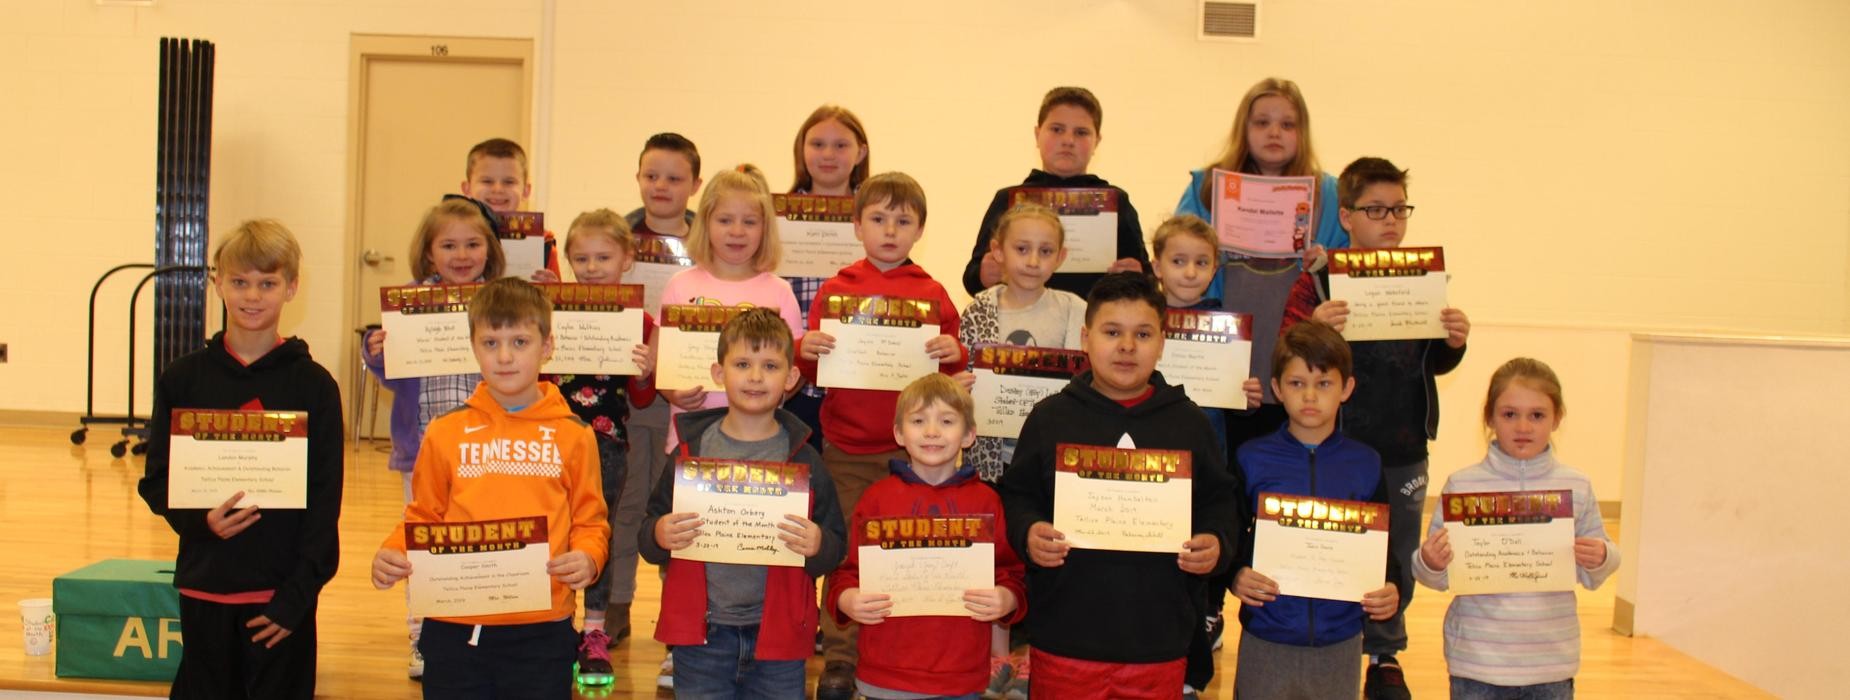 Picture of students who received the March 2019 Student of the Month Award